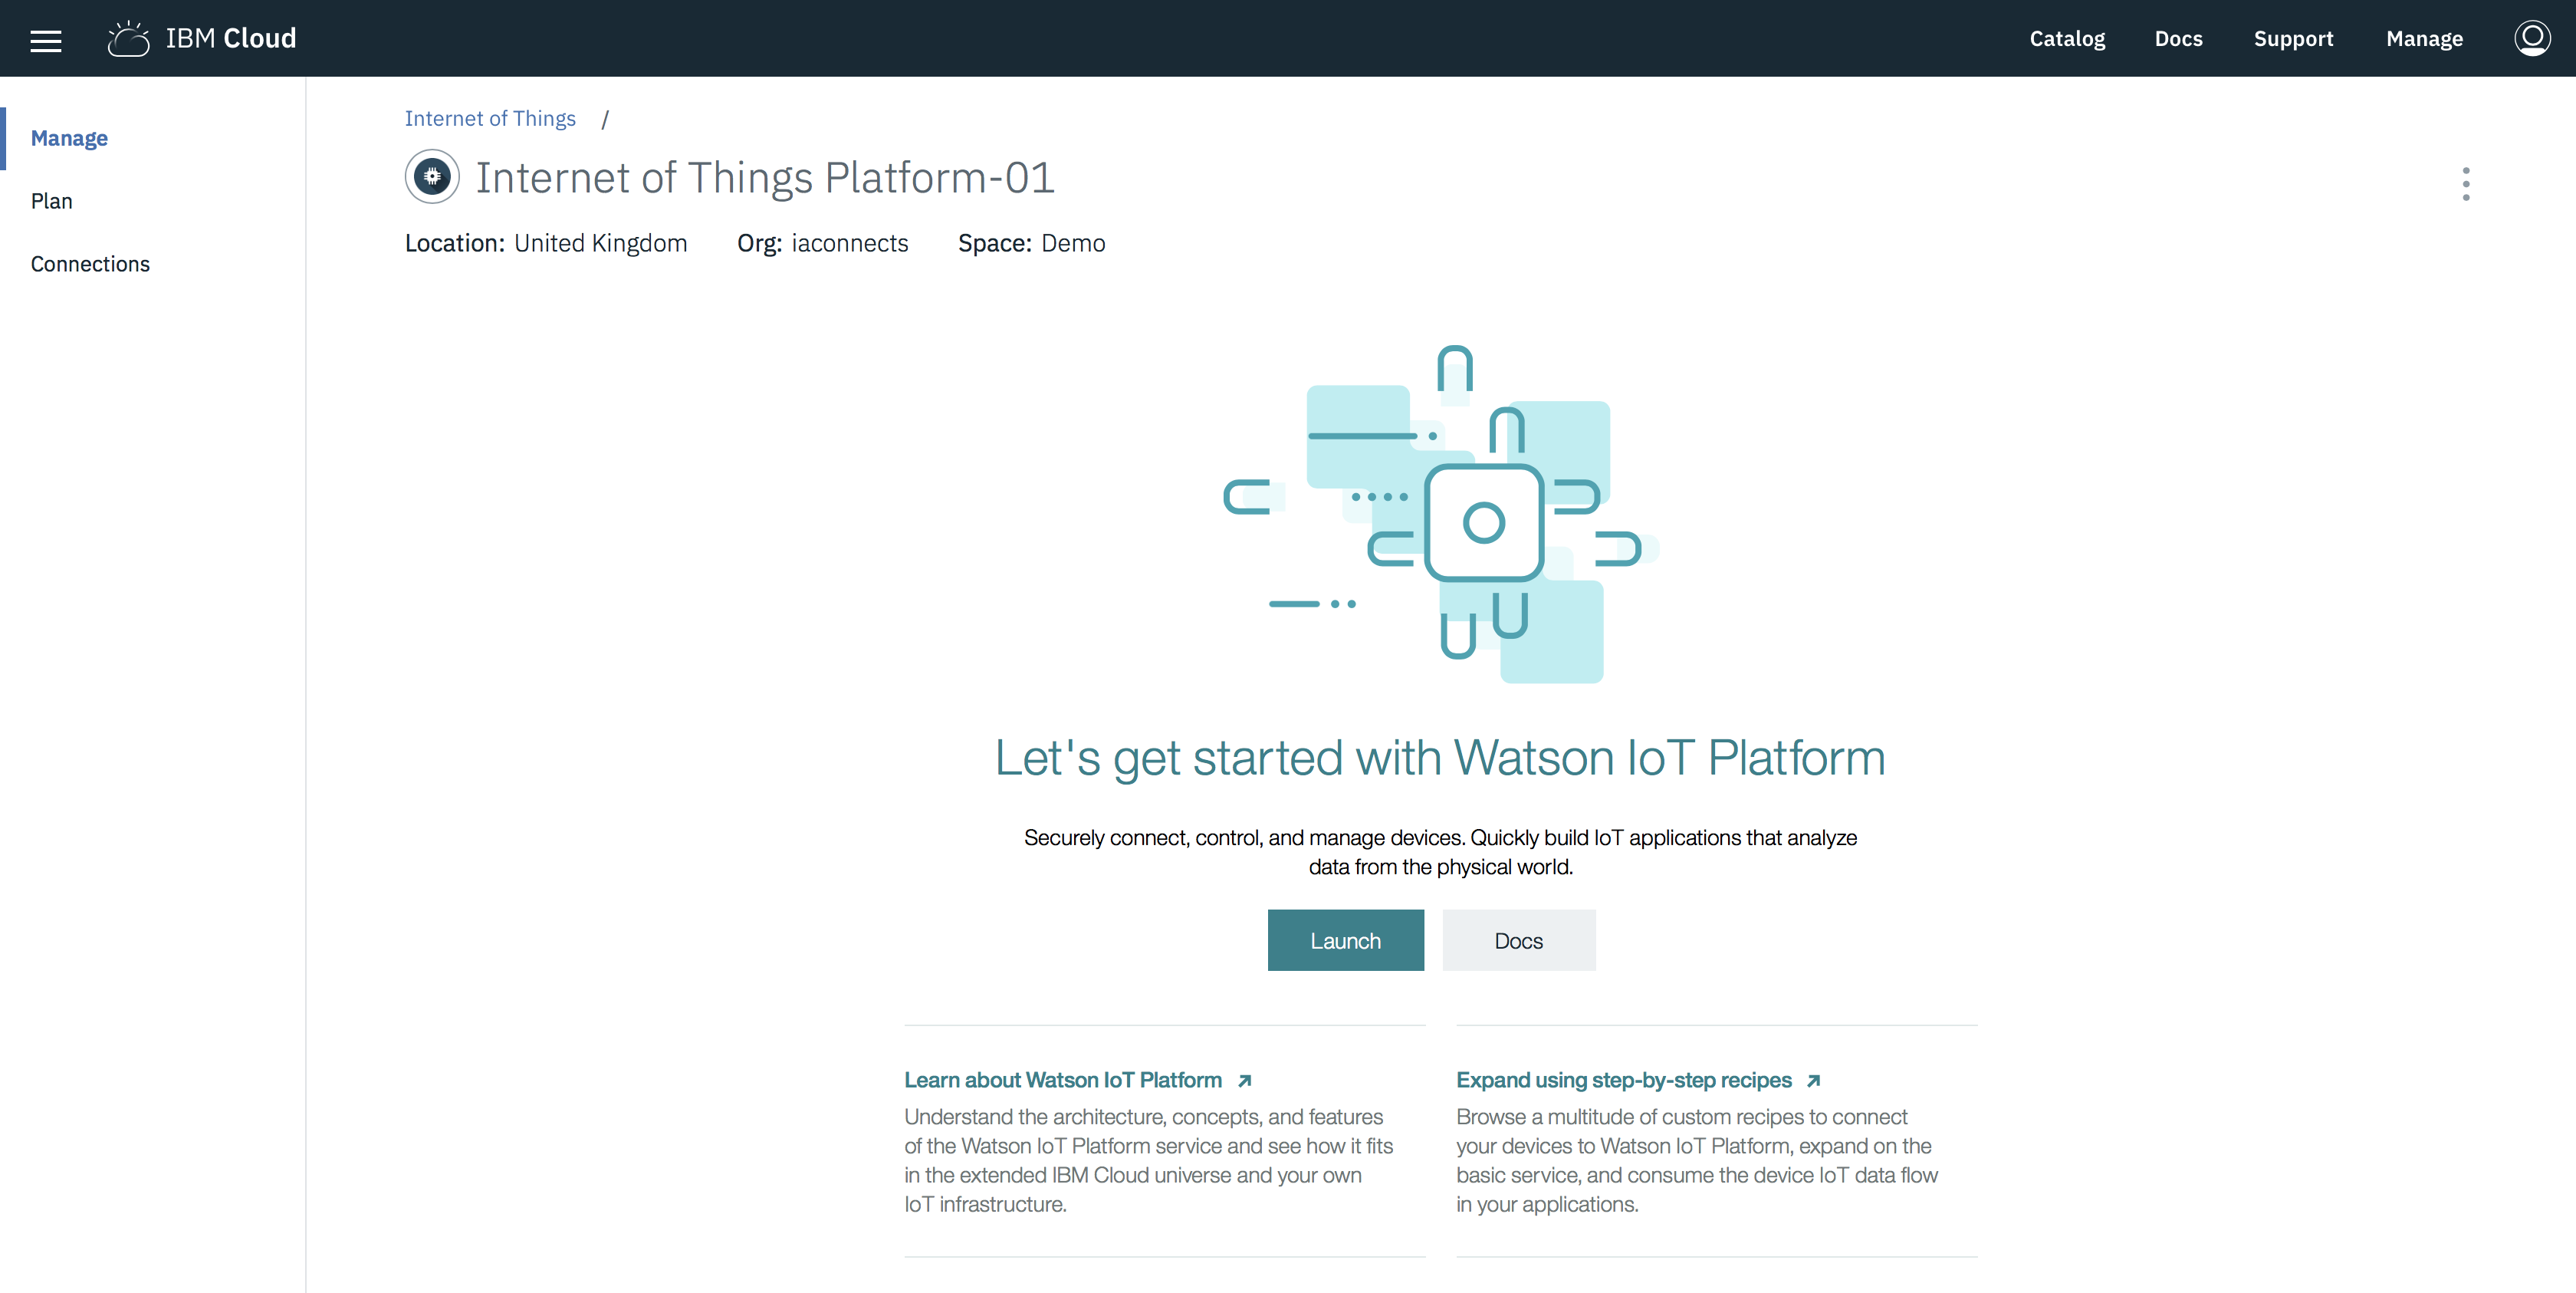 launch_iot_platform.png